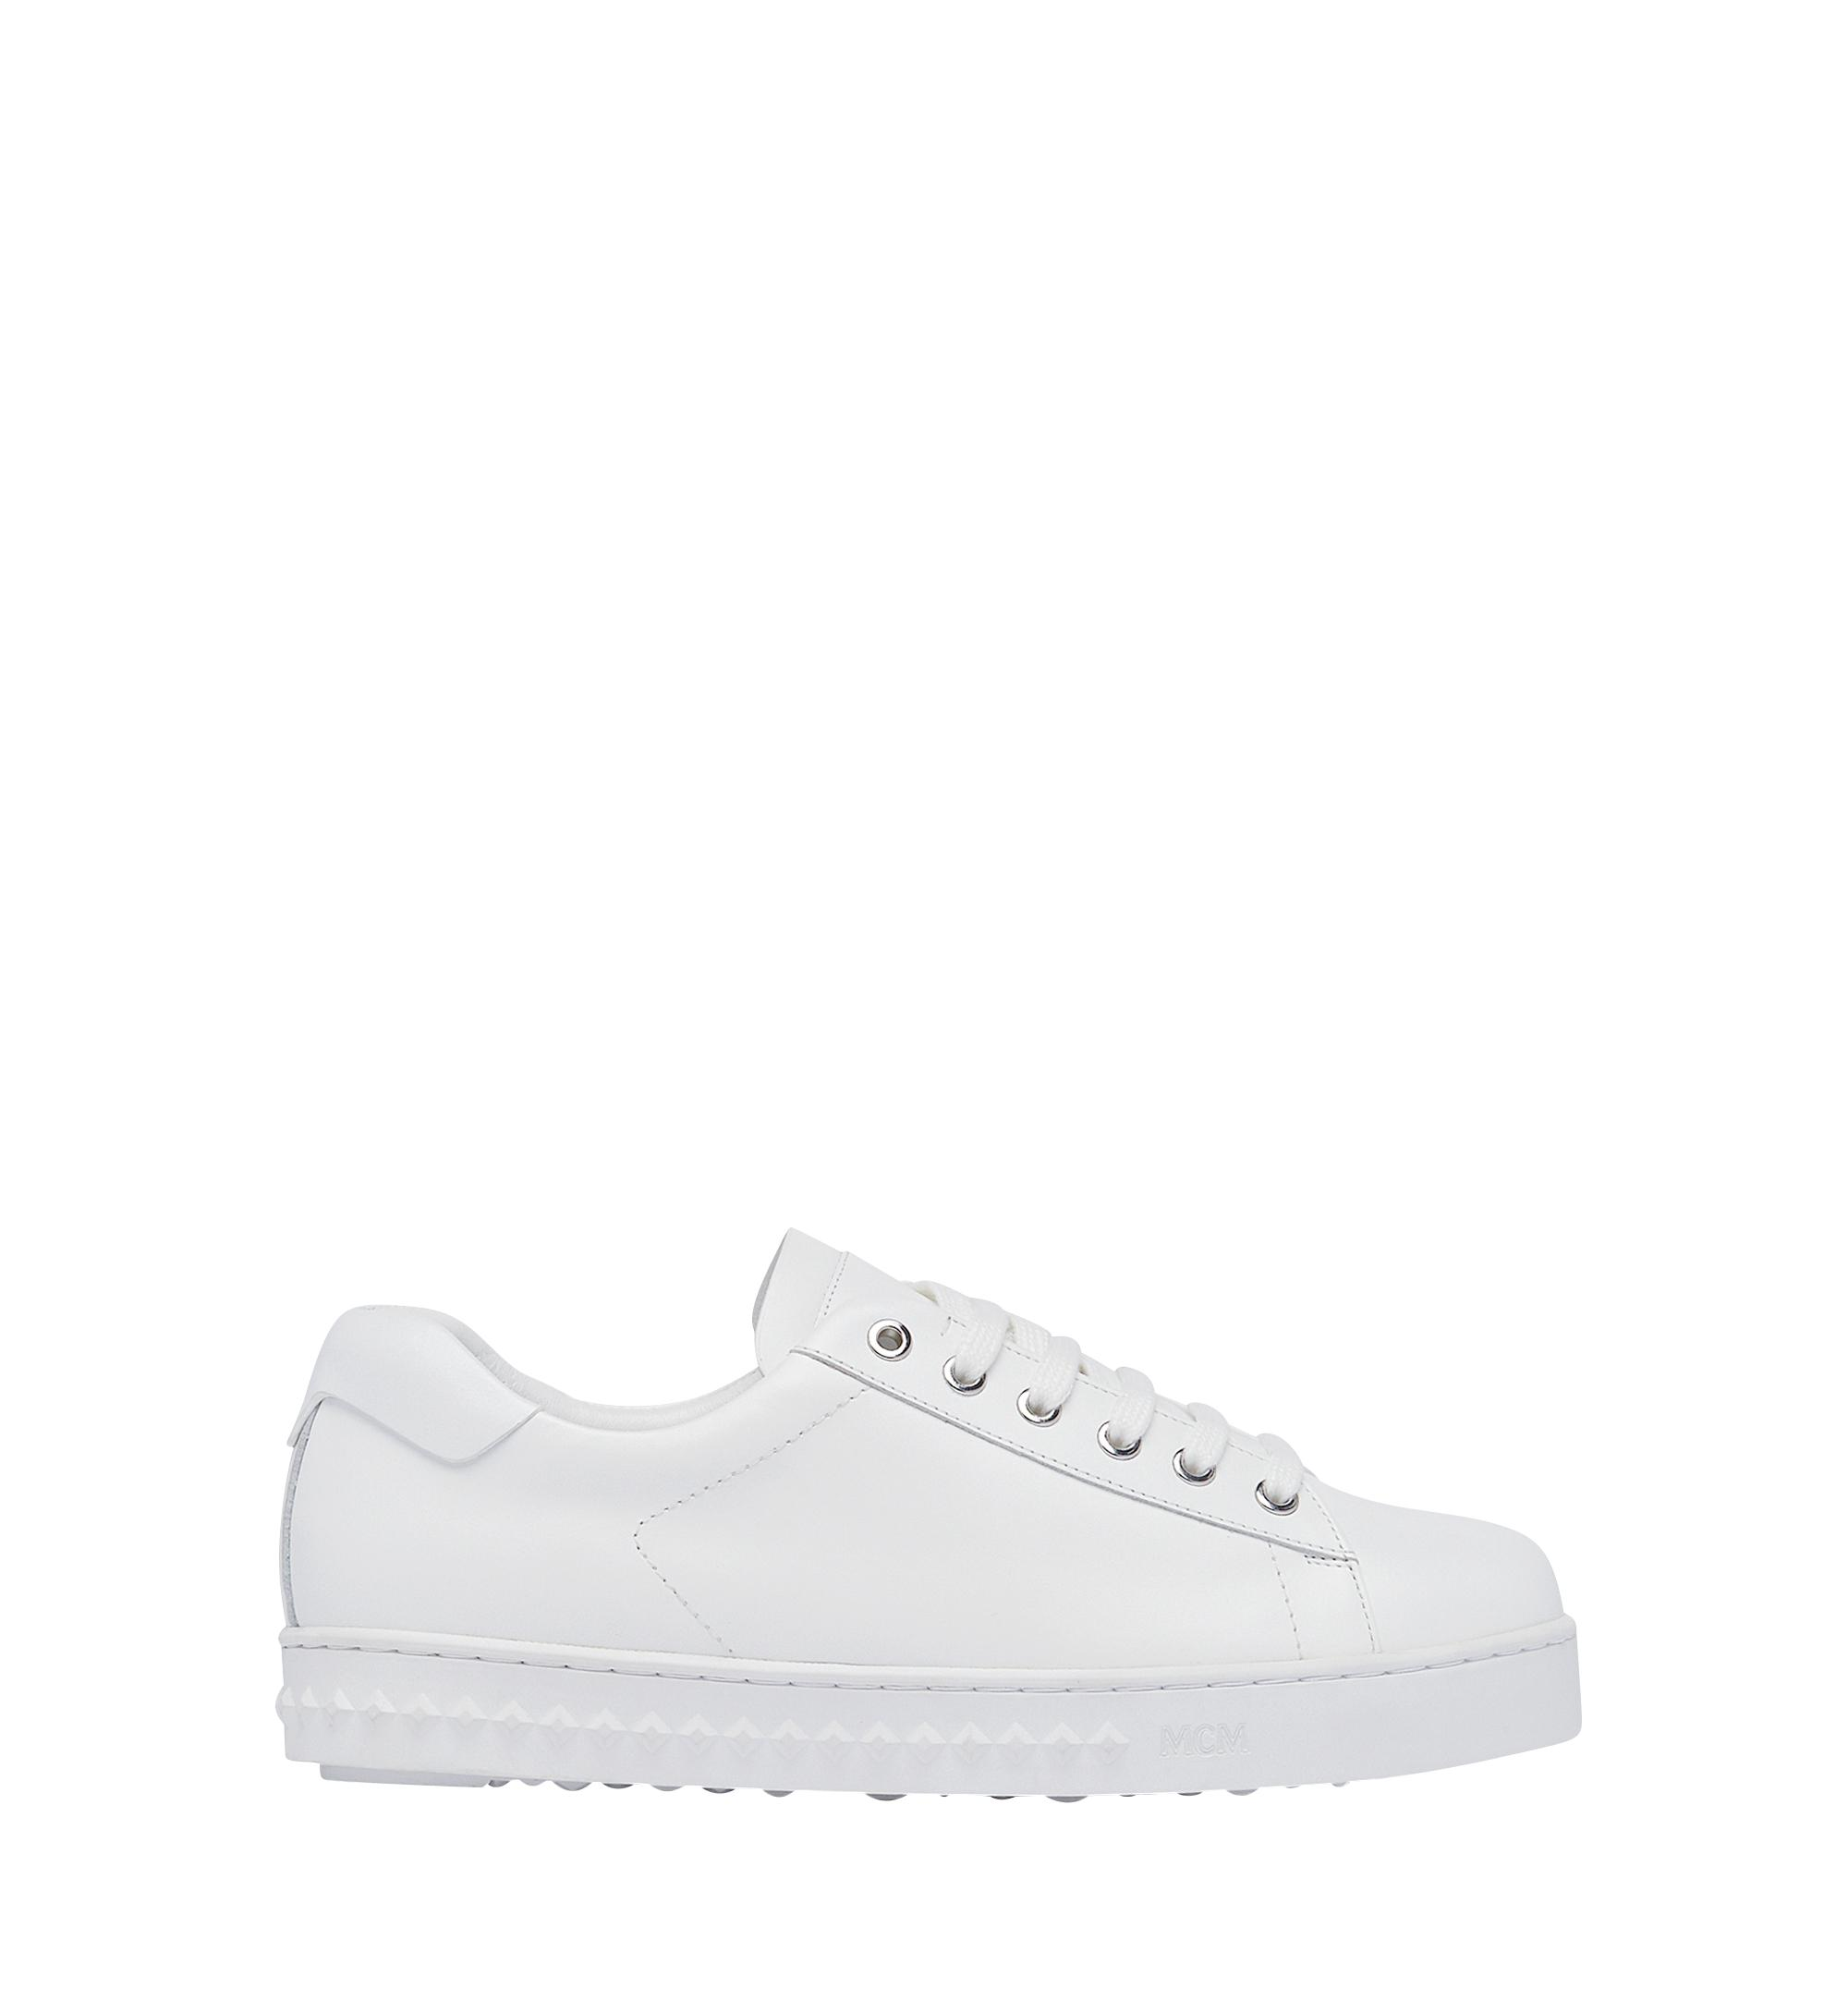 MCM Low Top Classic Sneakers In Leather in White